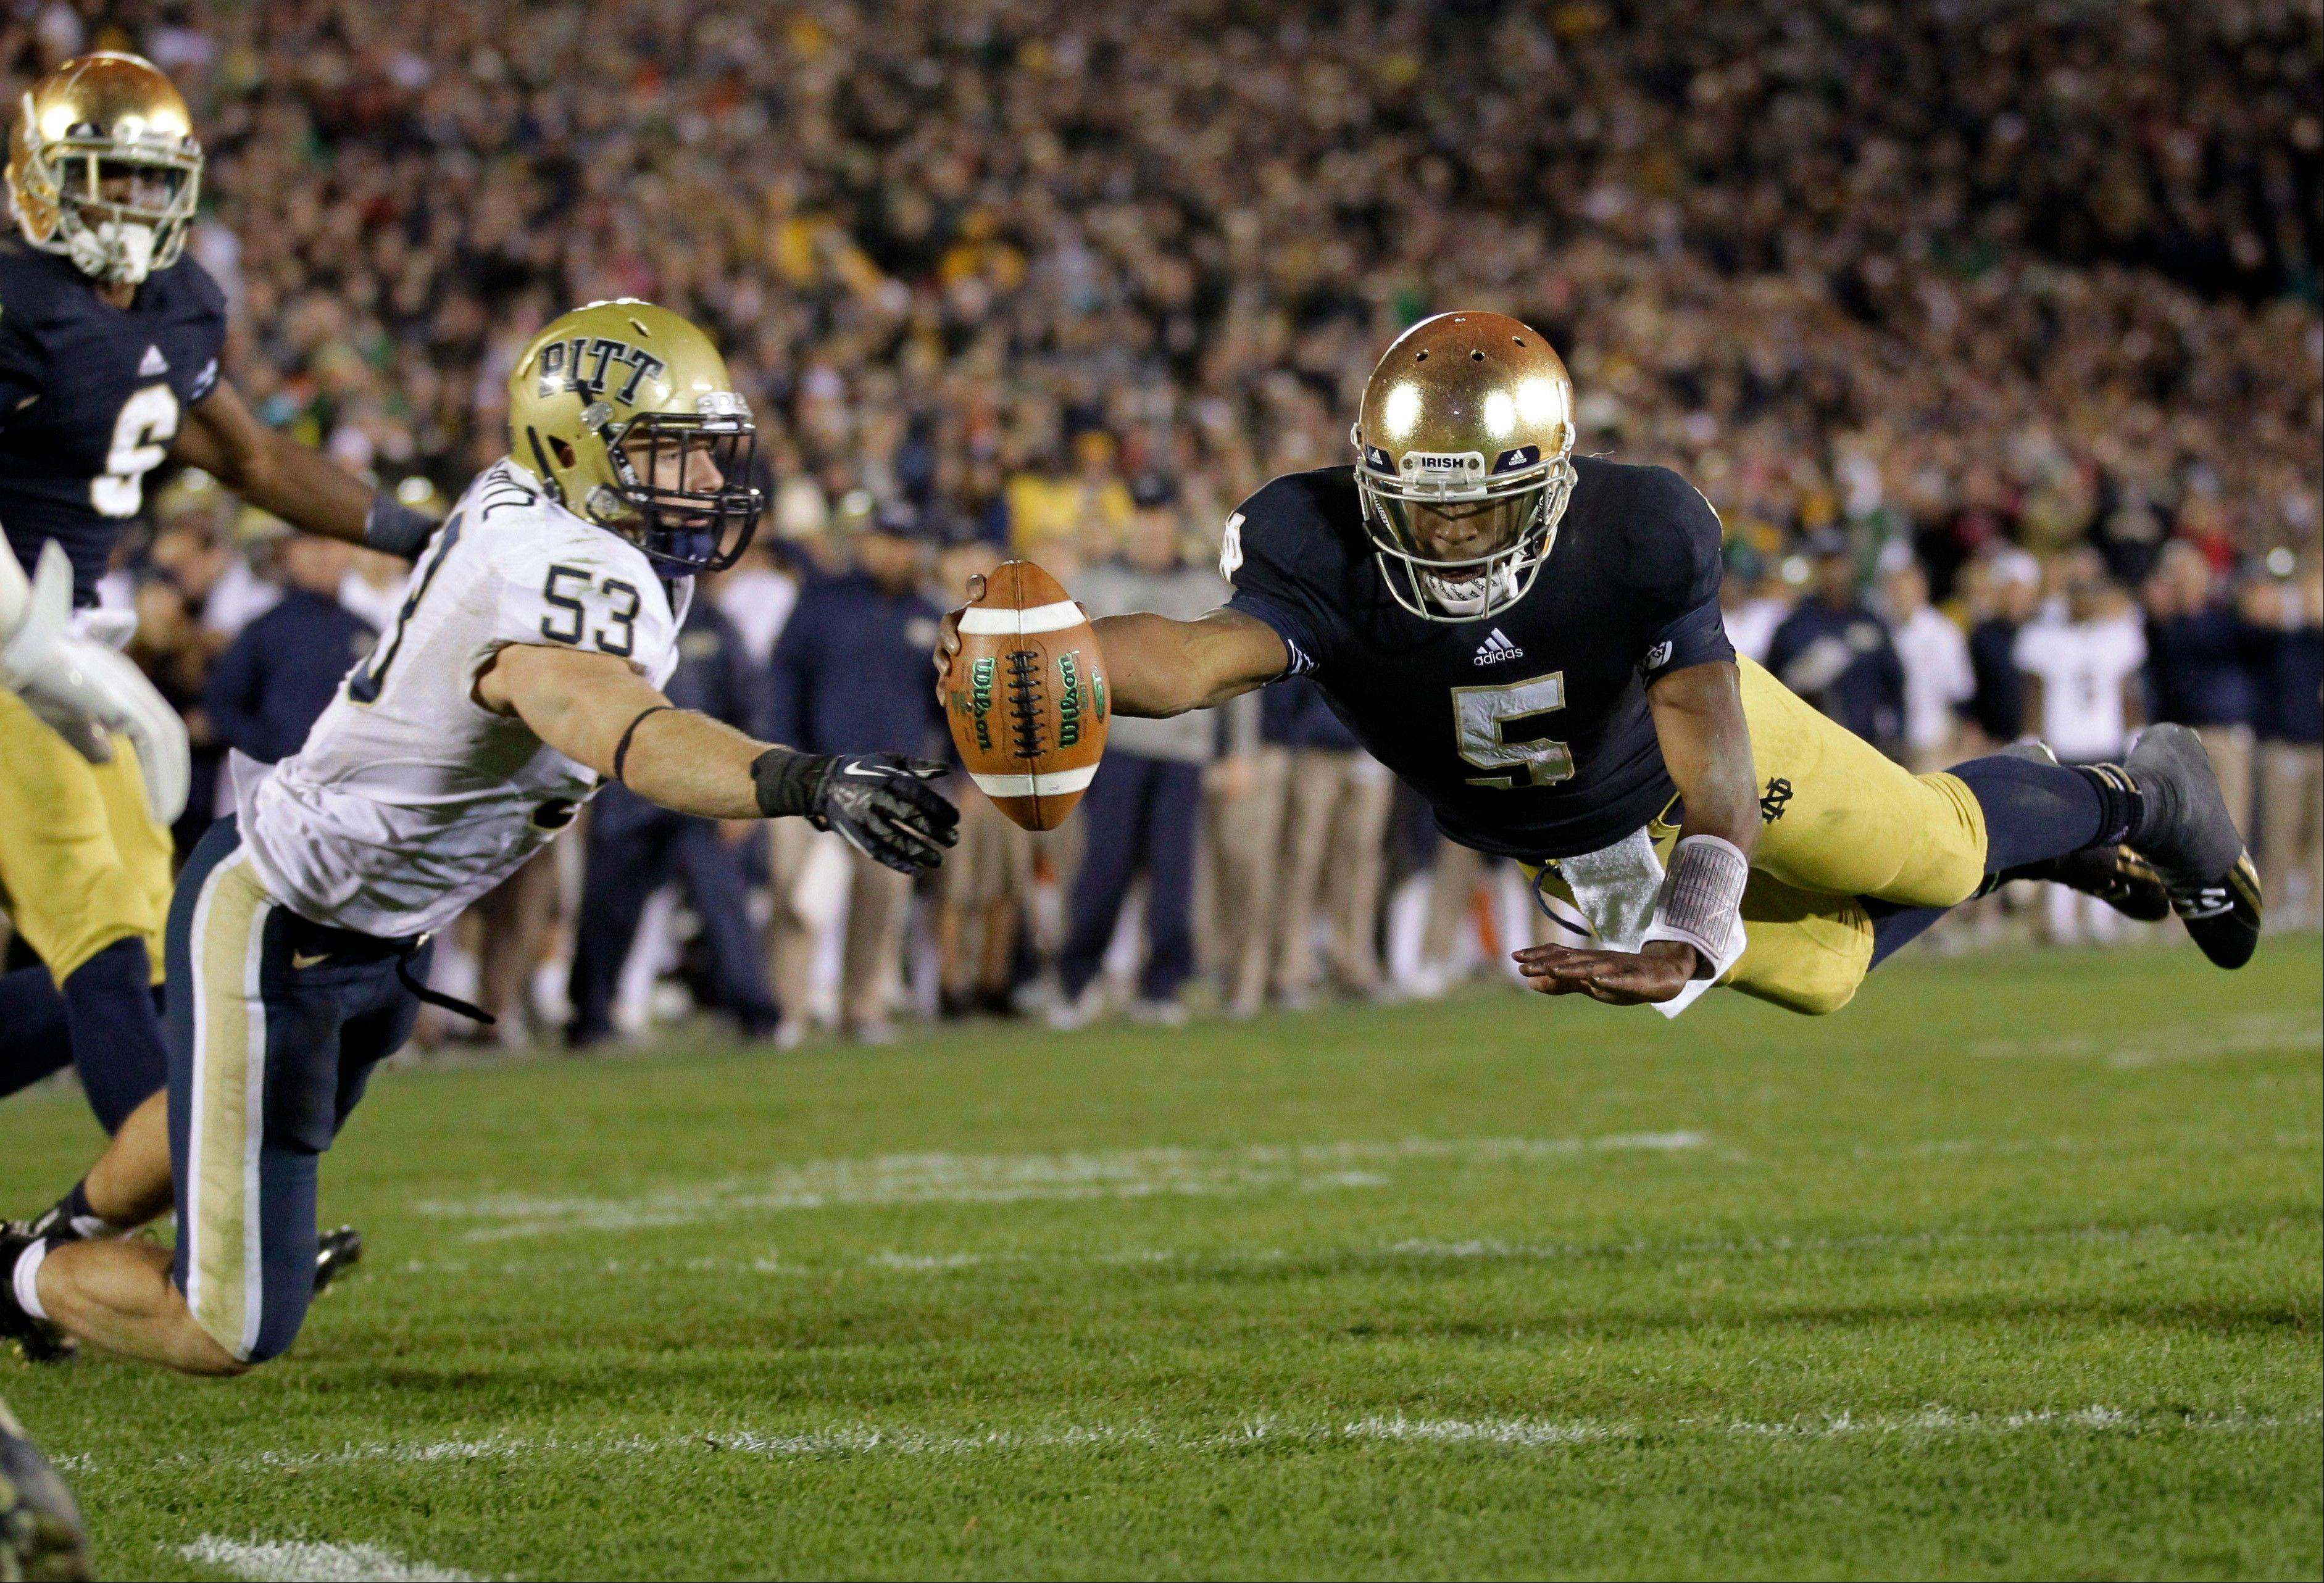 Notre Dame quarterback Everett Golson, right, dives into the end zone in front of Pittsburgh linebacker Joe Trebitz for a two-point conversion to tie the score late in the fourth quarter in South Bend, Ind. Golson is doing a lot more of the little things right, and it's leading to more big plays for top-ranked Notre Dame.